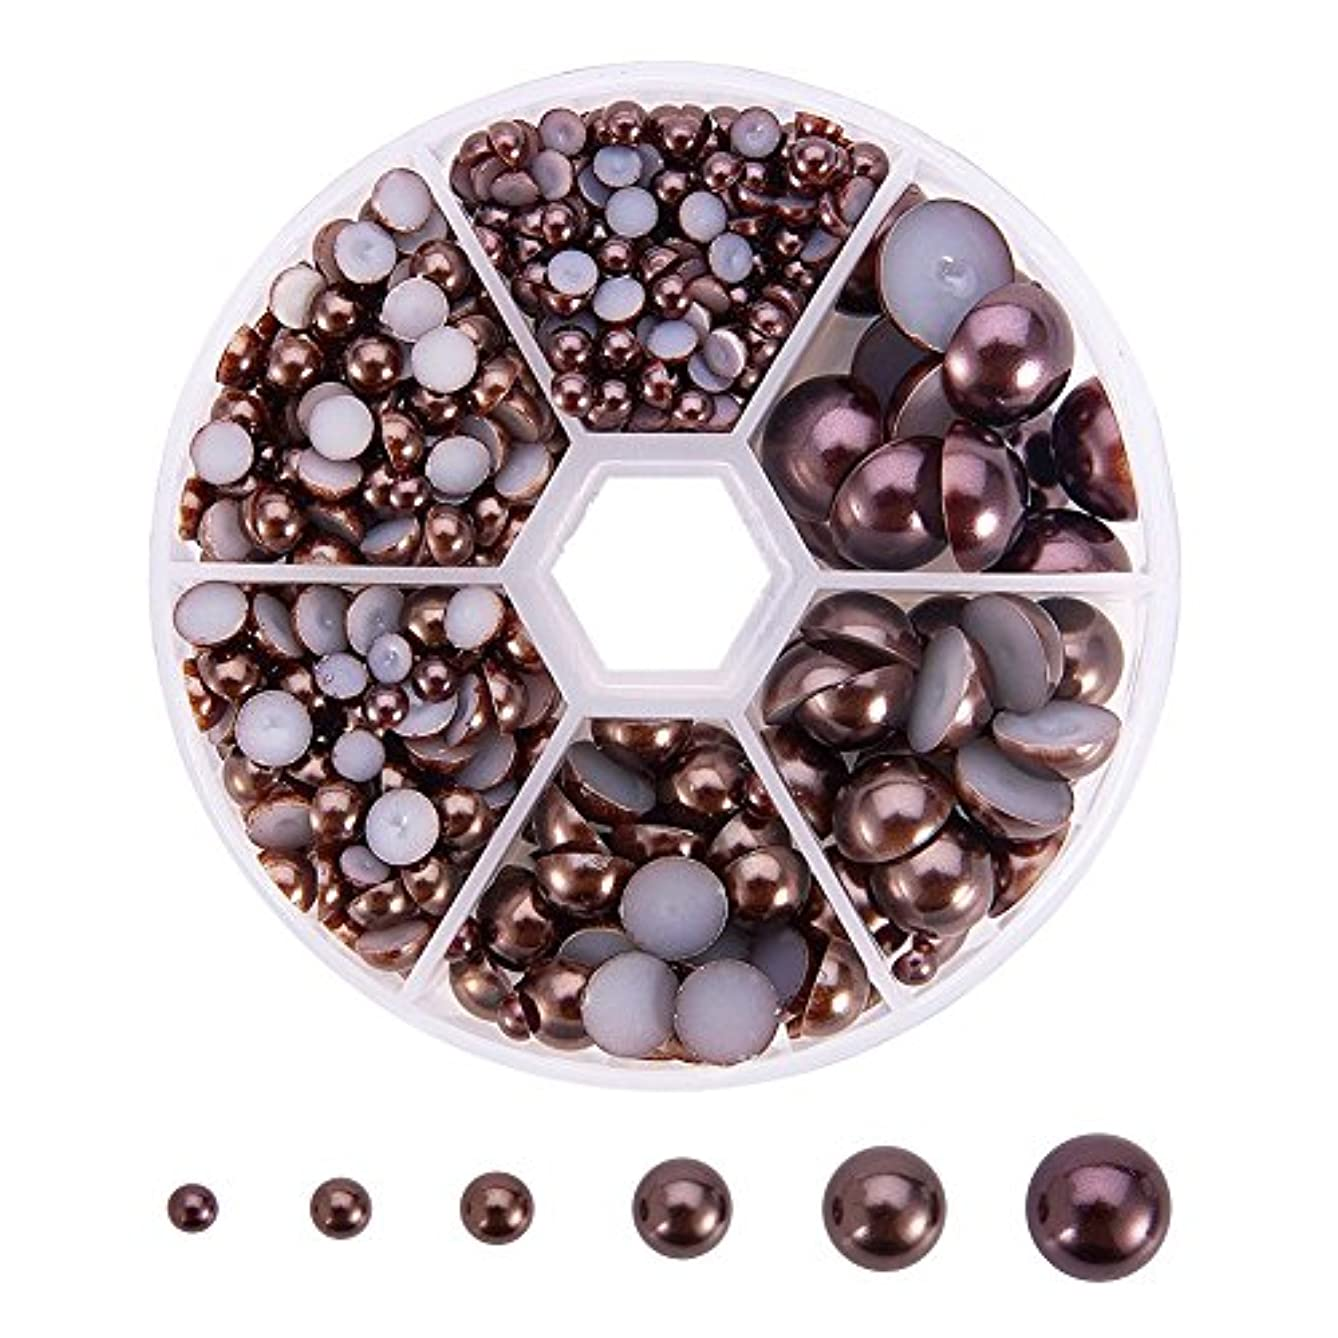 PandaHall Elite 1 Box About 690 Pcs Coconut Brown Assorted Mixed Sizes 4-12mm Flat Back Pearl Cabochons